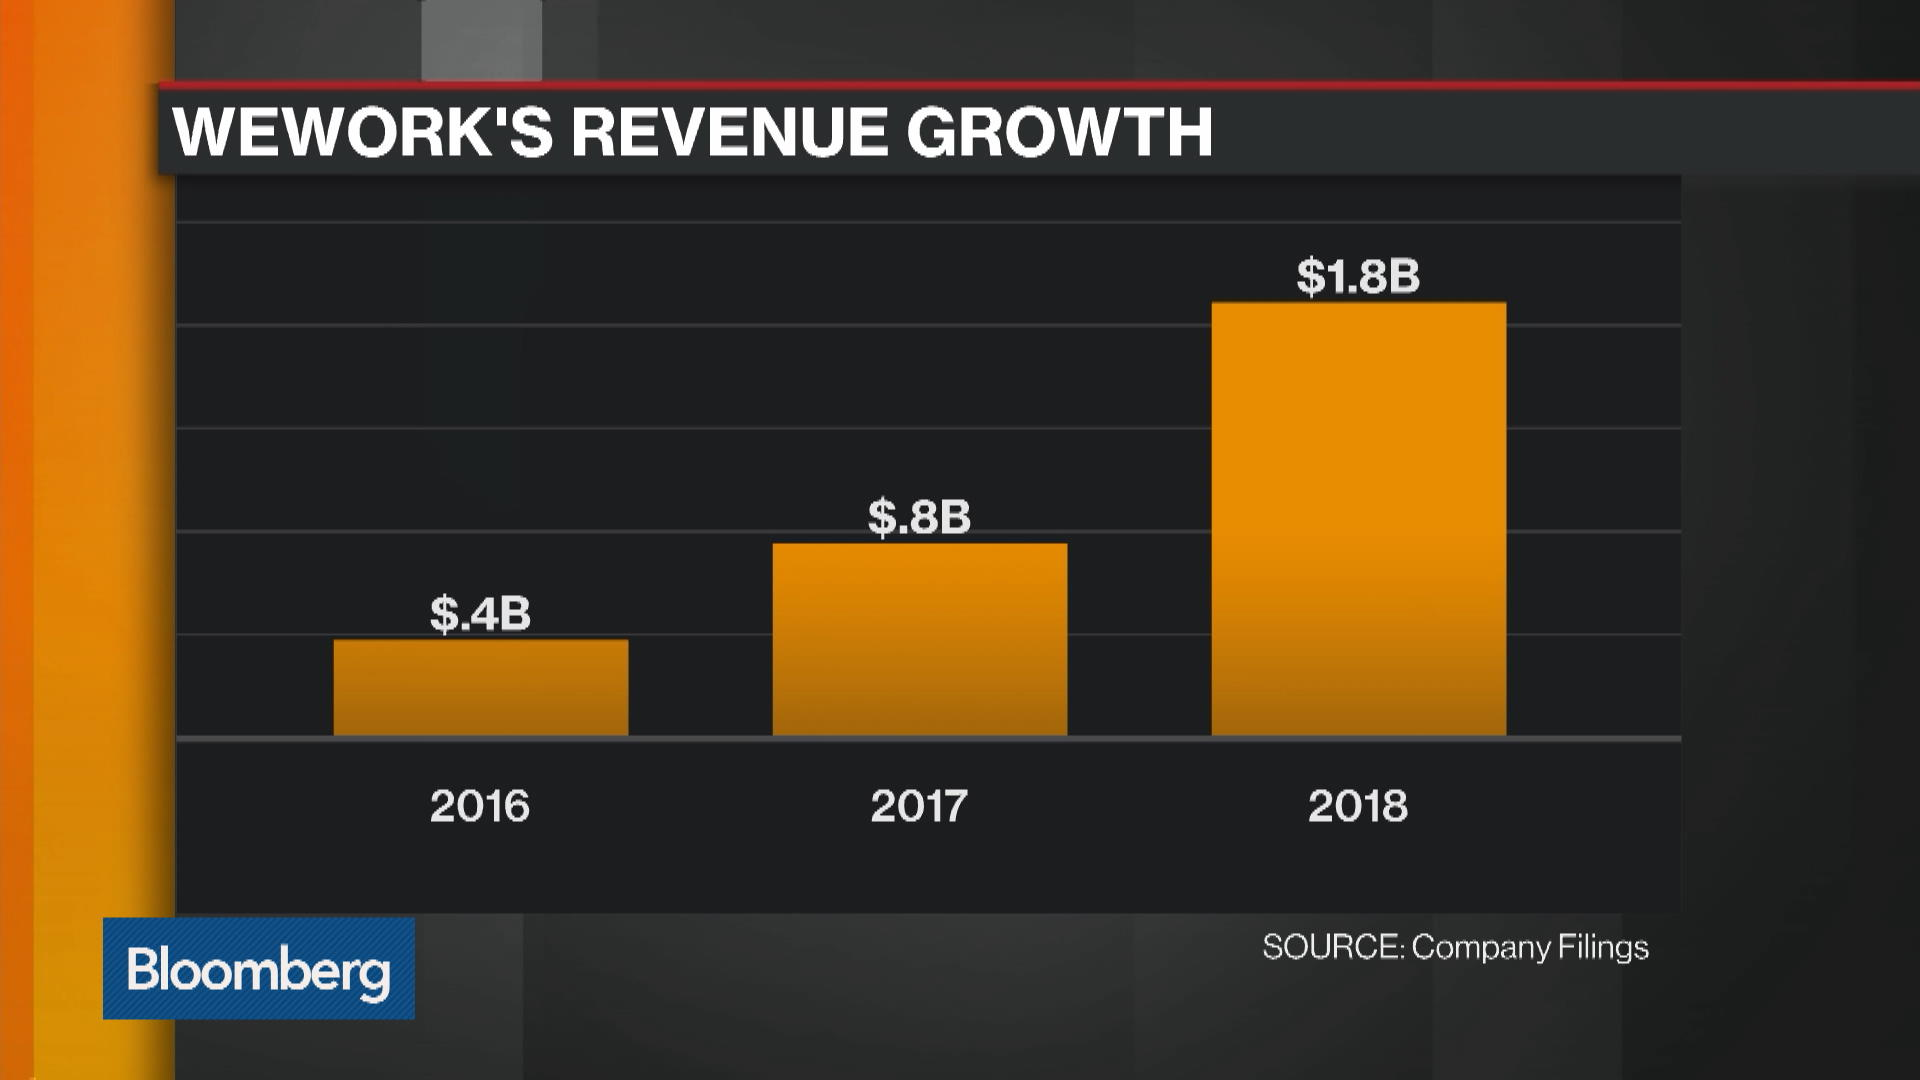 WeWork Is the Poster Child for Losses, Lack of Transparency and Arrogance, Triton CEO Says